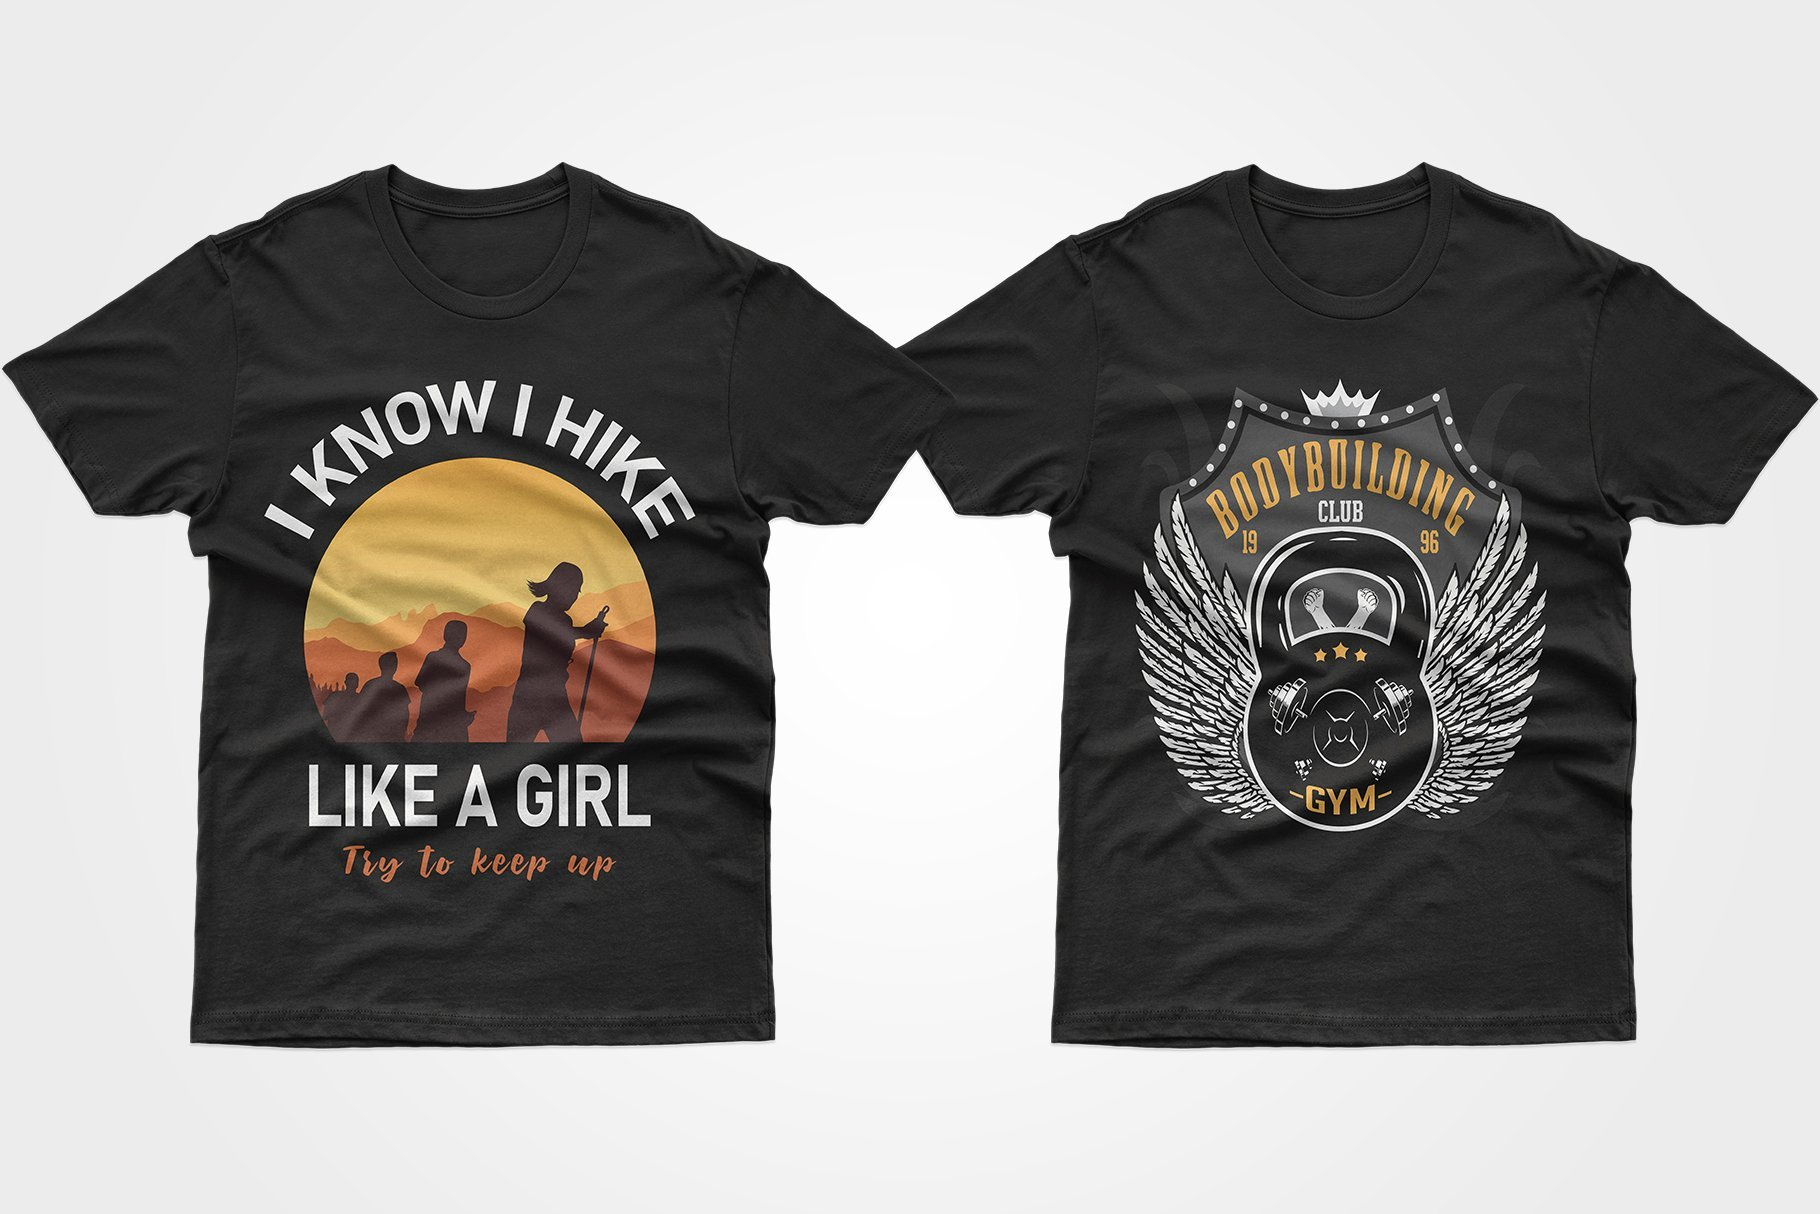 Two black T-shirts, one with dumbbells and one with a sunset hike.